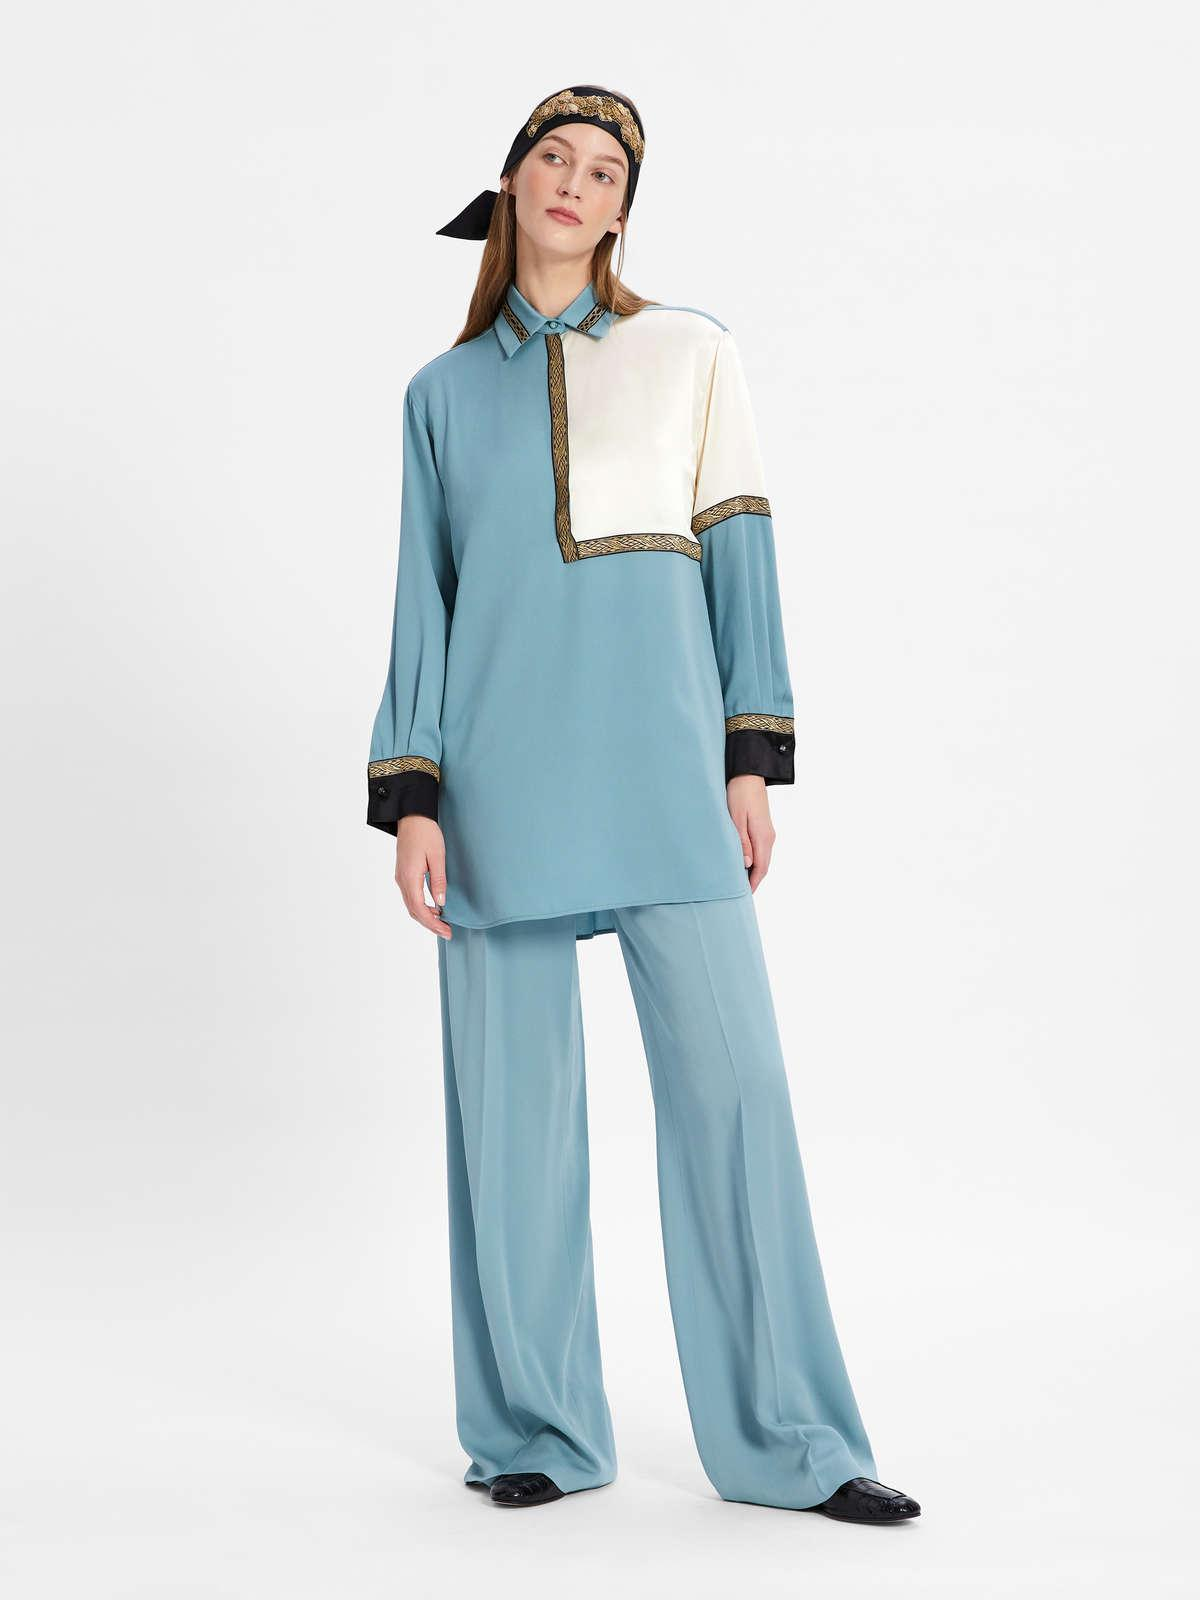 Womens Max Mara Blouses | Men'S-Style Oversized Shirt In Pure Silk Charmeuse Green